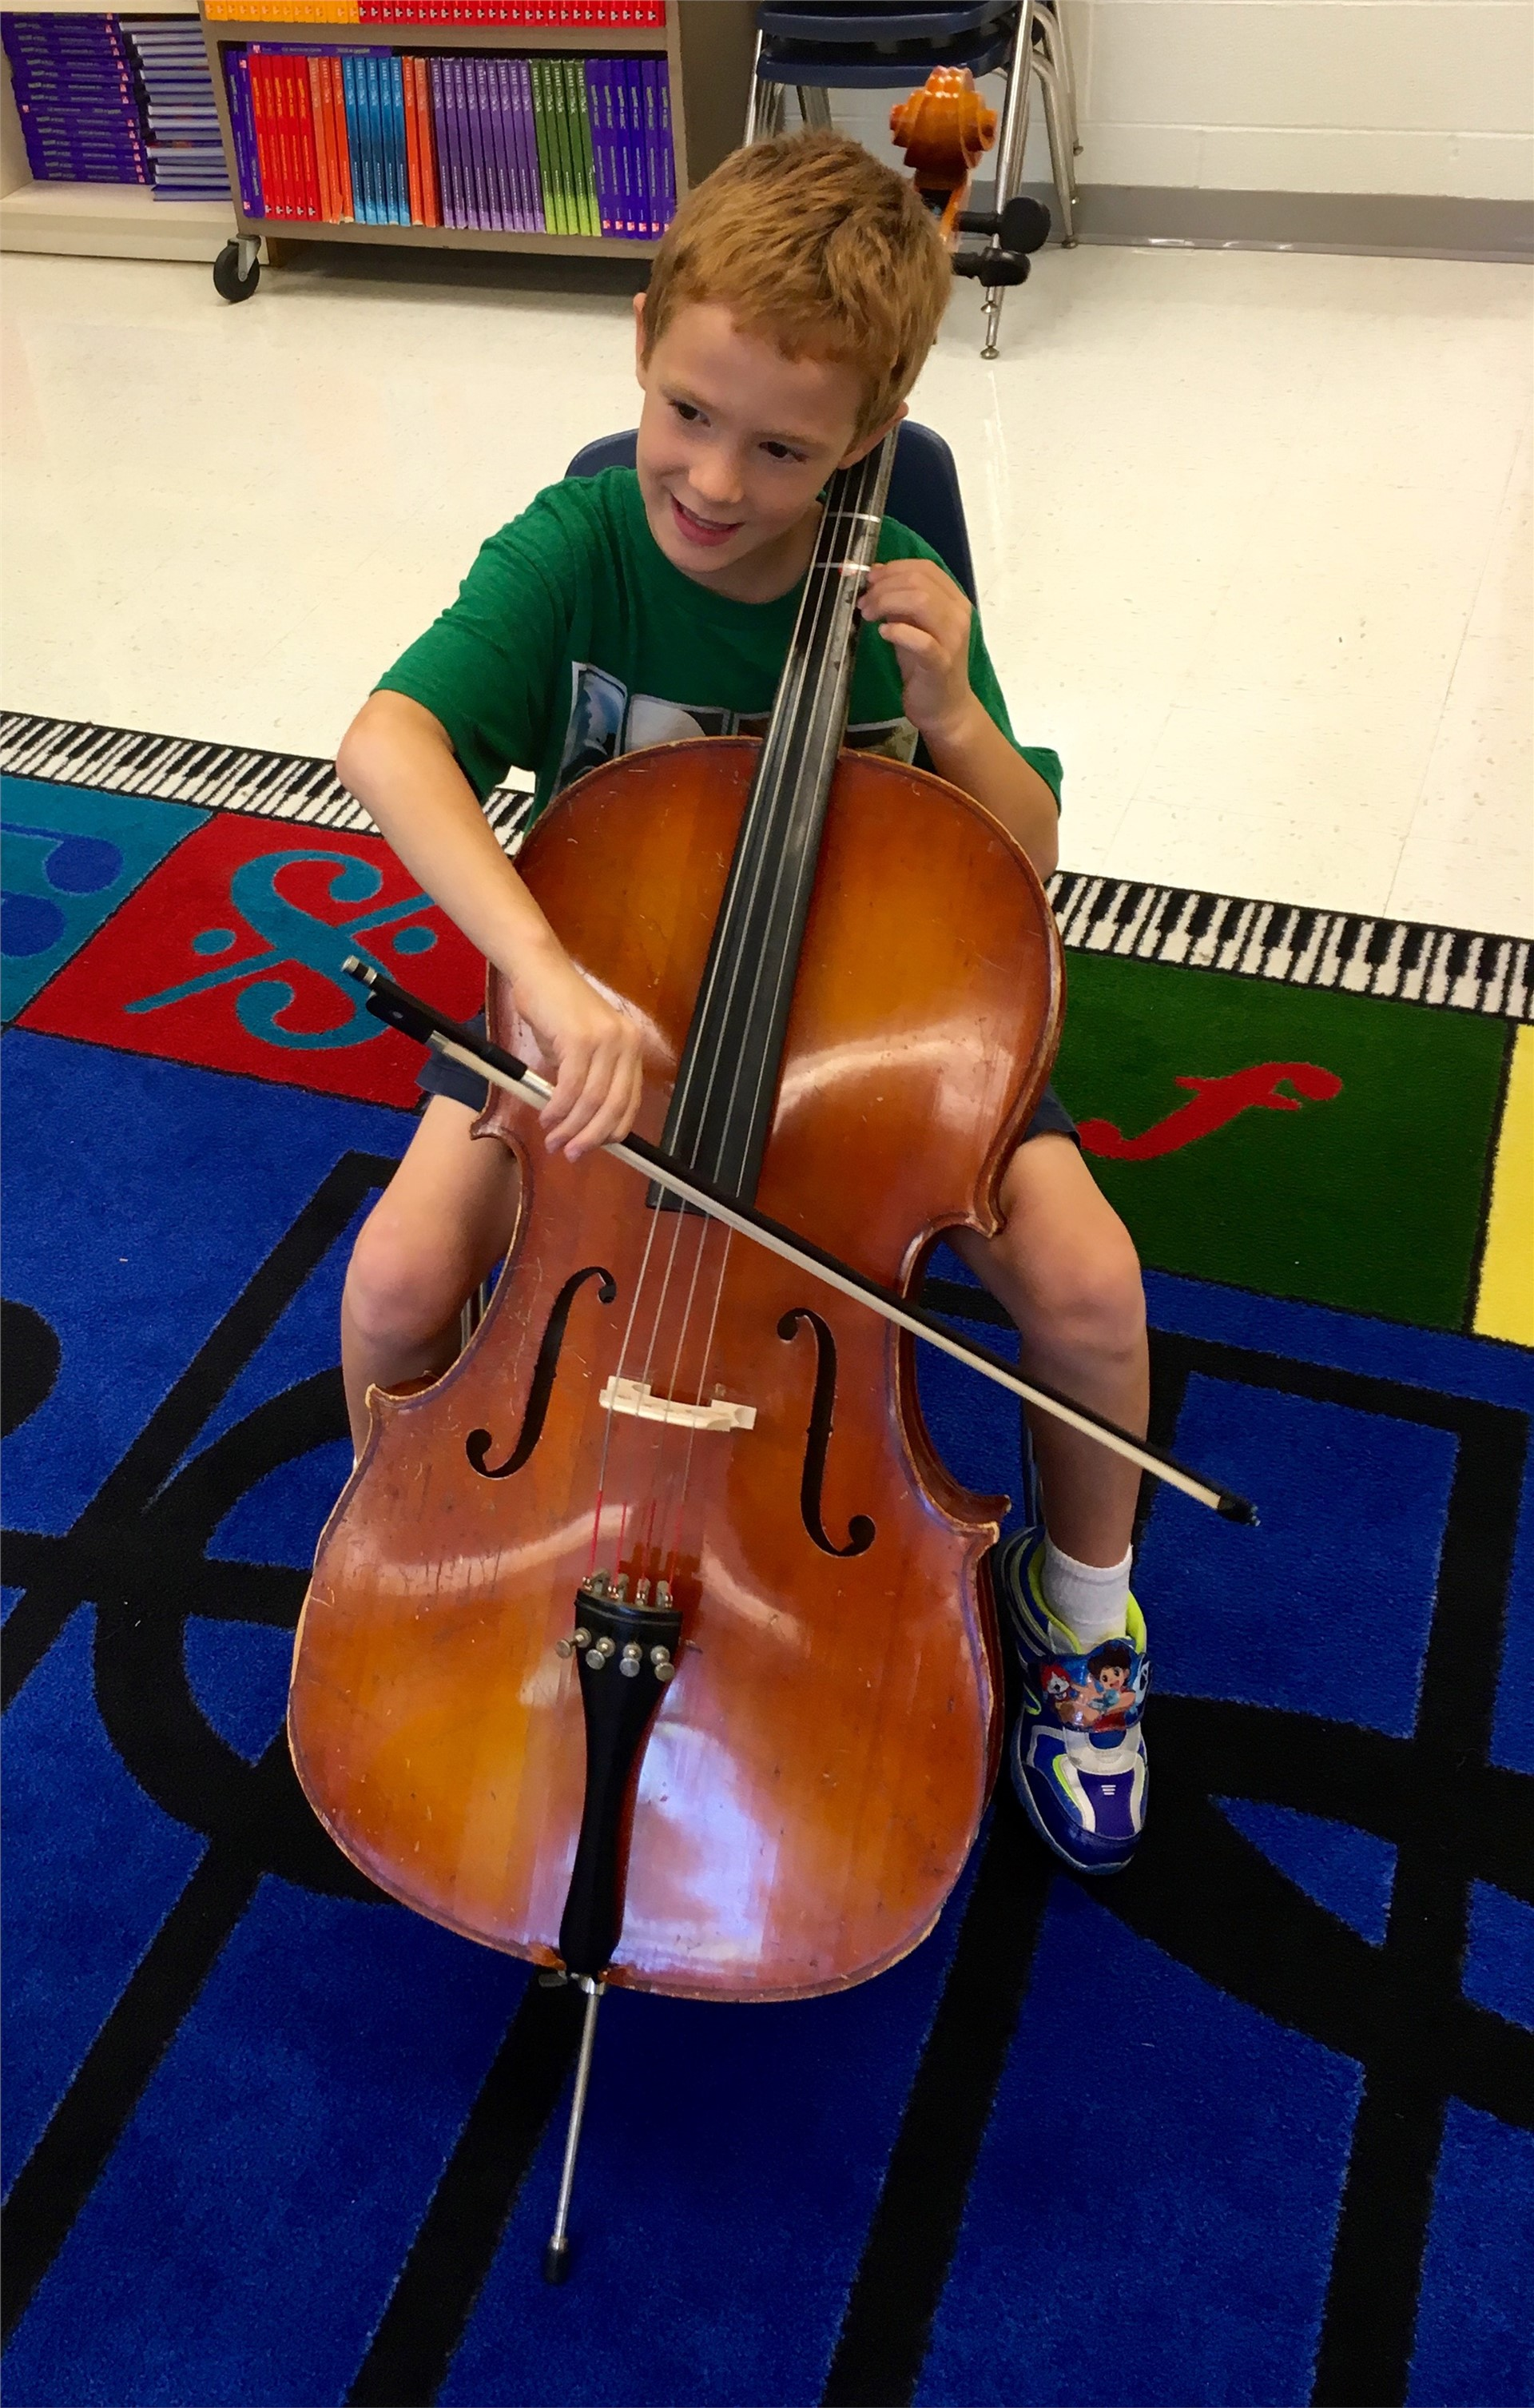 Trying out a cello.